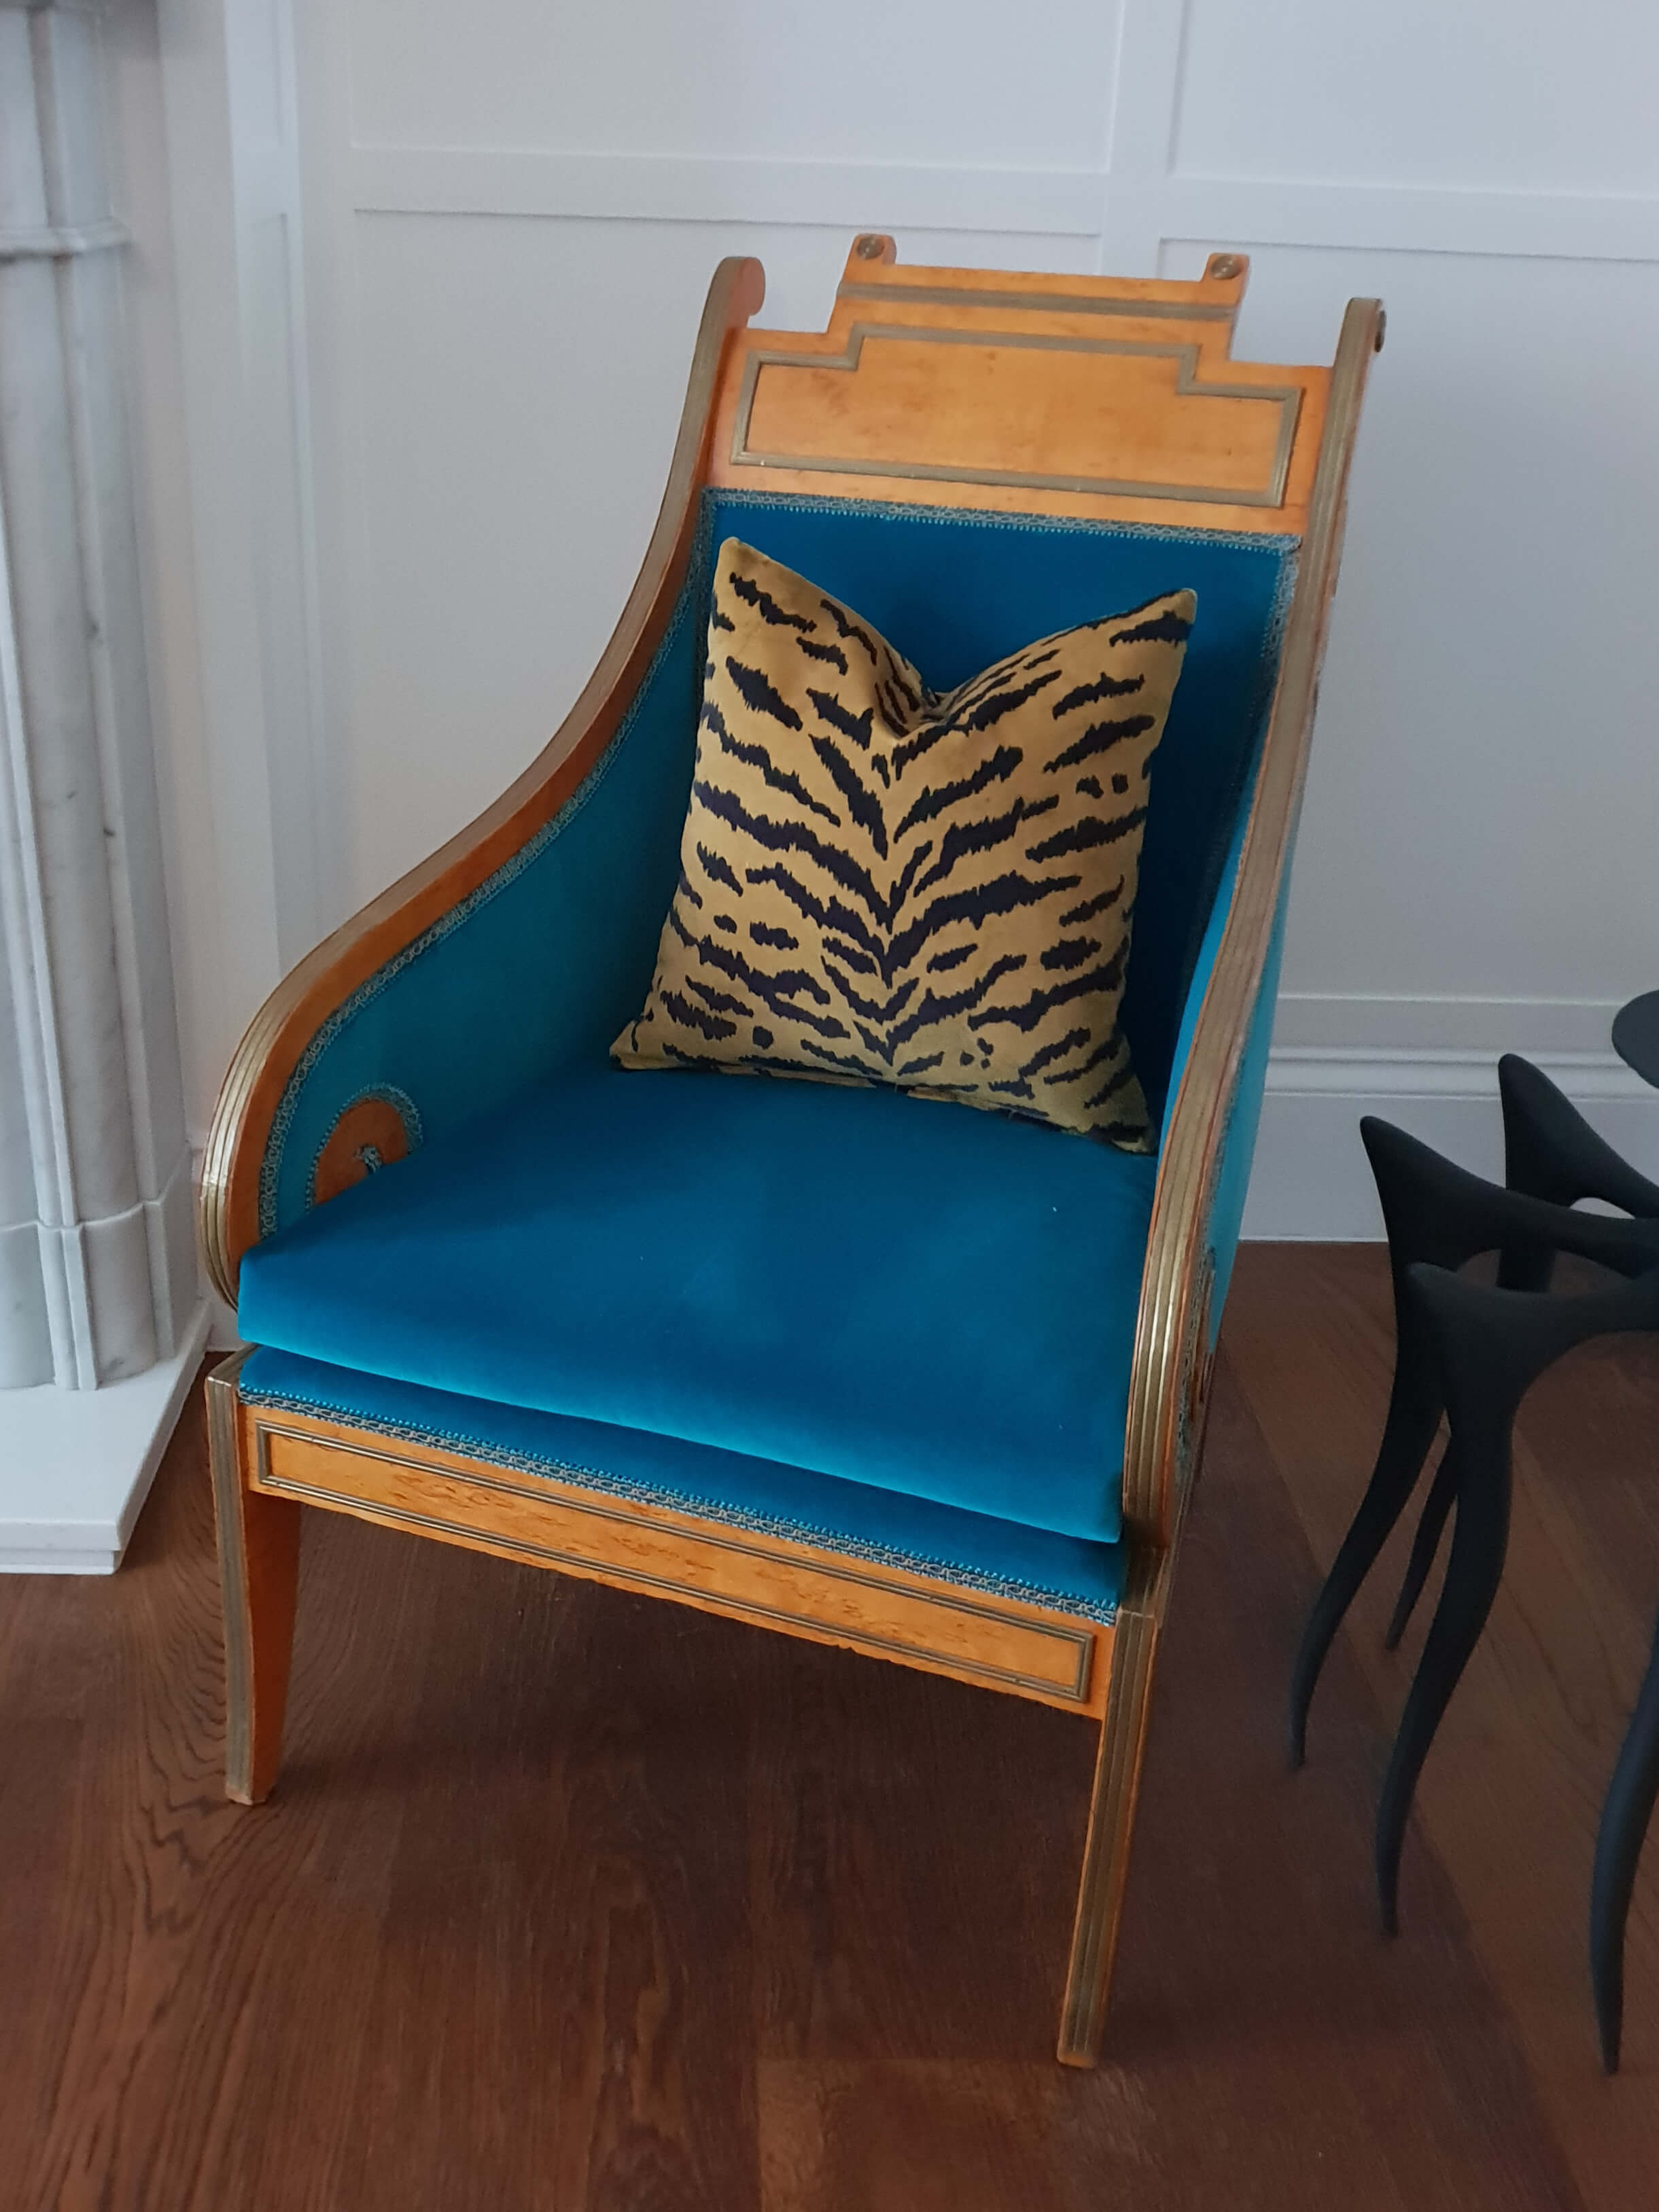 Upholstered chair in blue fabric with tiger pattern cushion